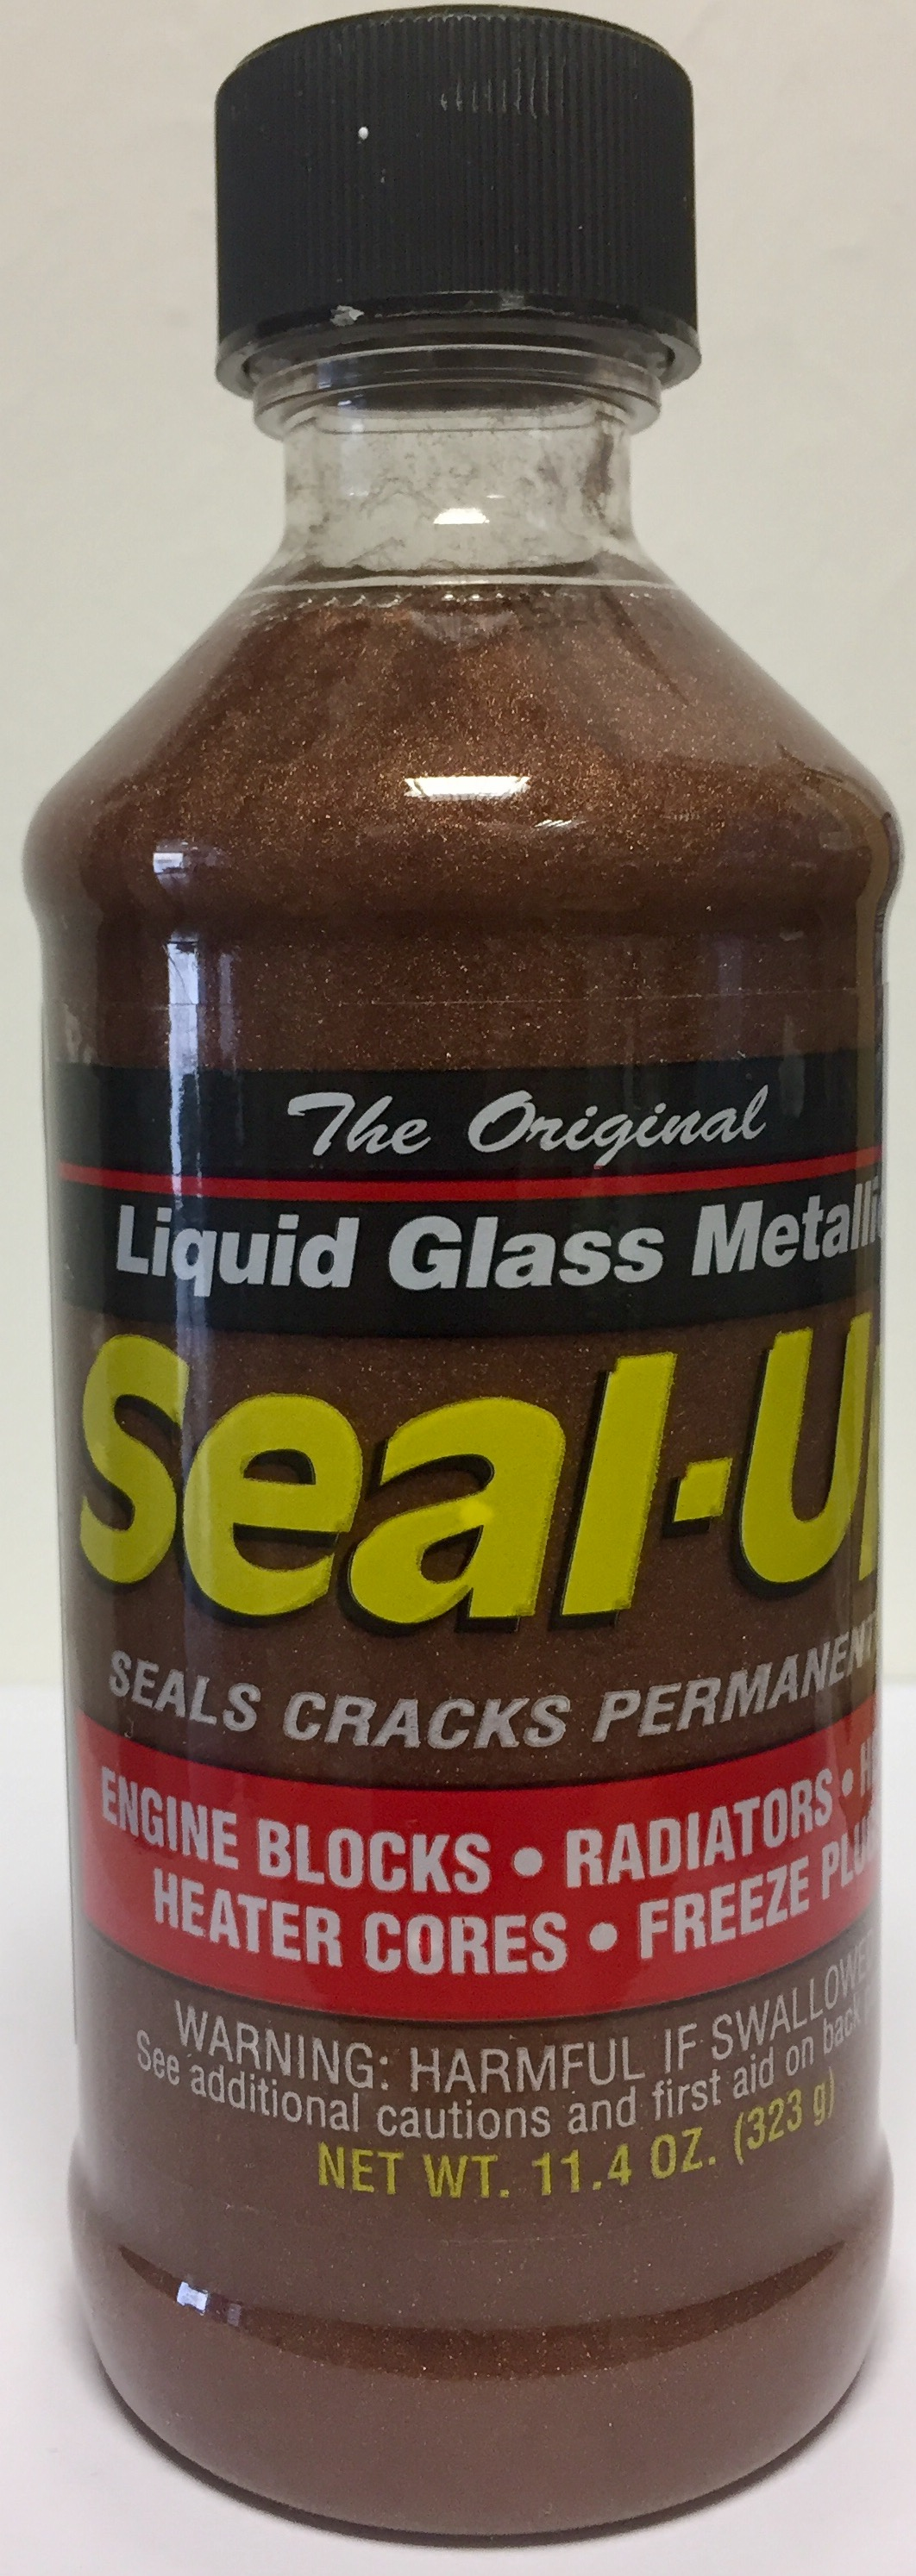 Tapafugas de culata, Seal-Up